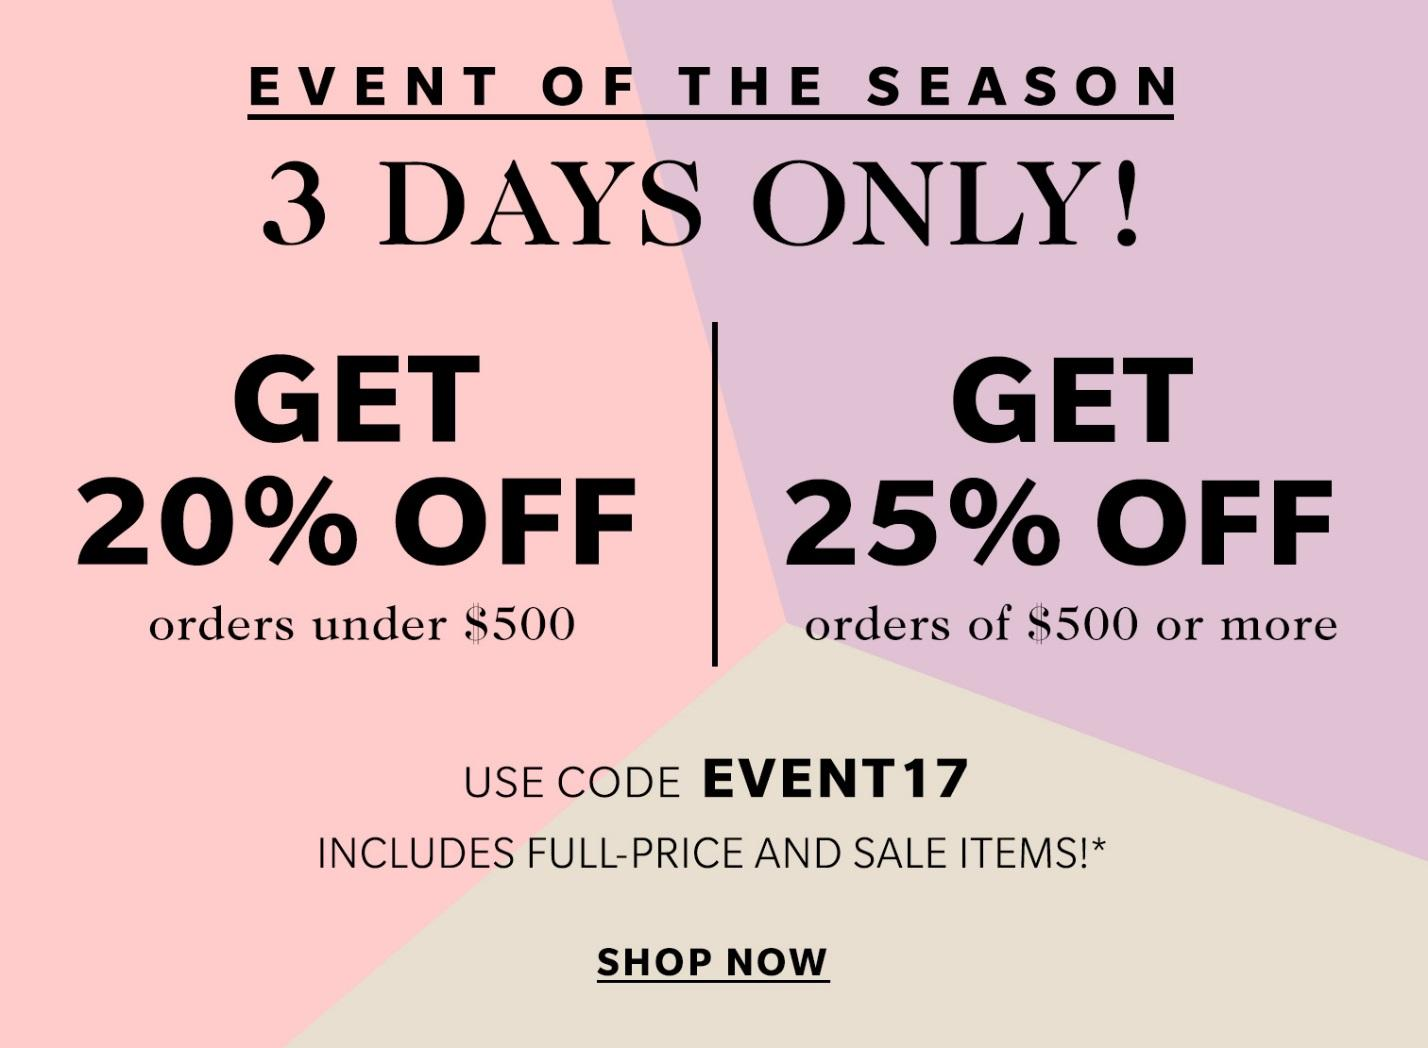 Unique & Stylish Gifts For Mom + Shopbop Sale Details! by fashion blogger Sandy A La Mode